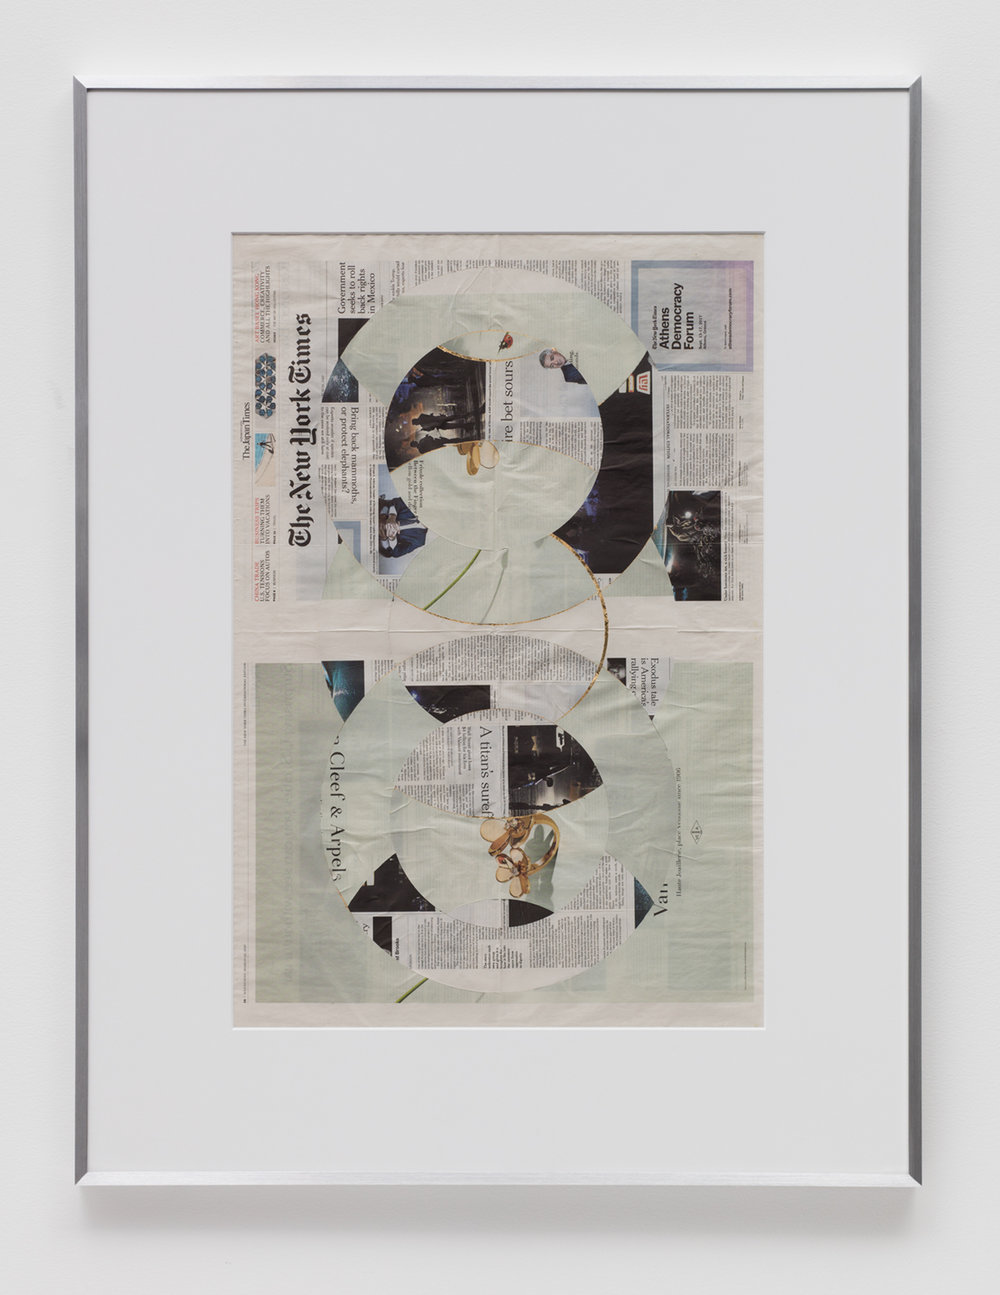 Blind Collage (Two 180º Rotations, The New York Times International Edition, Distributed with The Japan Times, Wednesday, March 22, 2017)    2017   Newspaper, tape, and 22 karat gold leaf  43 5/8 x 33 1/8 inches   Blind Collages, 2017–